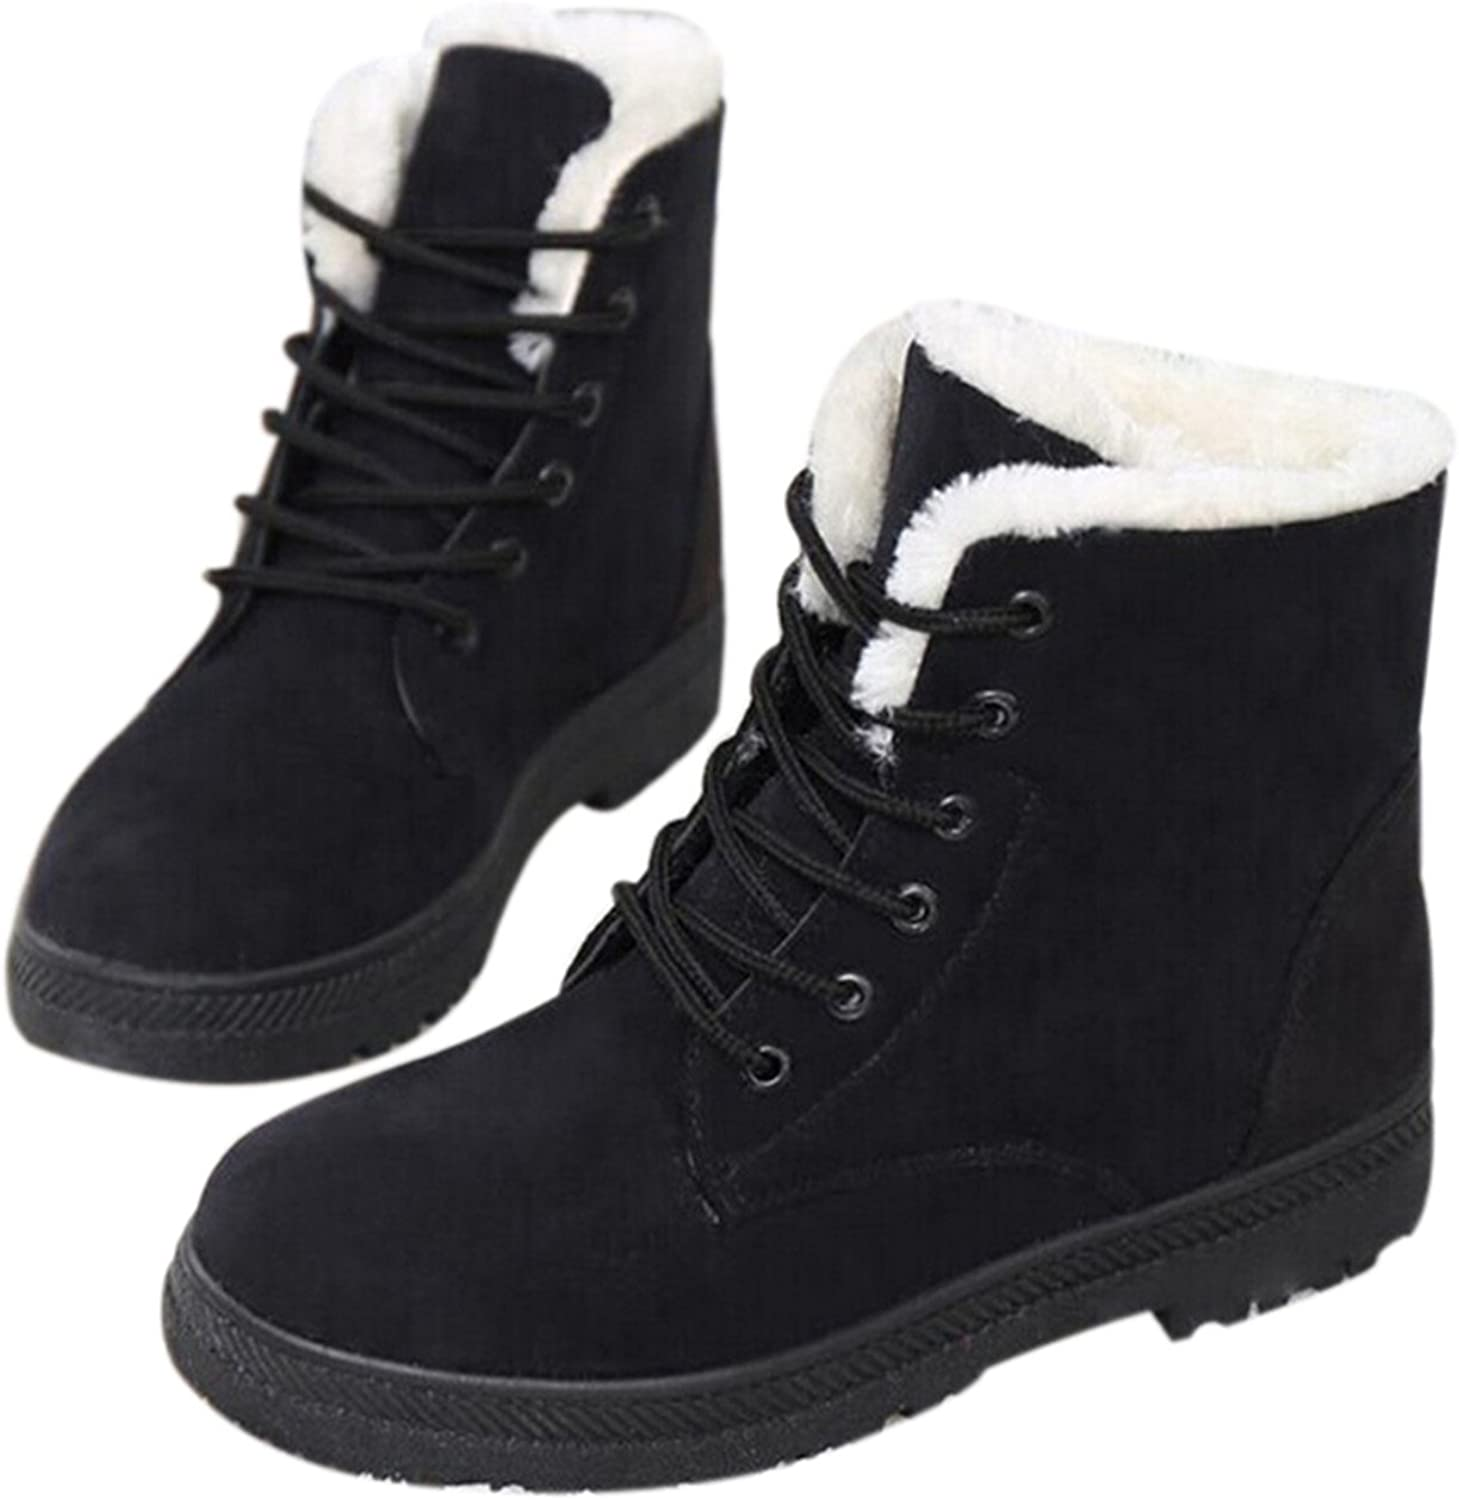 Dormery Snow Boots Winter Ankle Boots